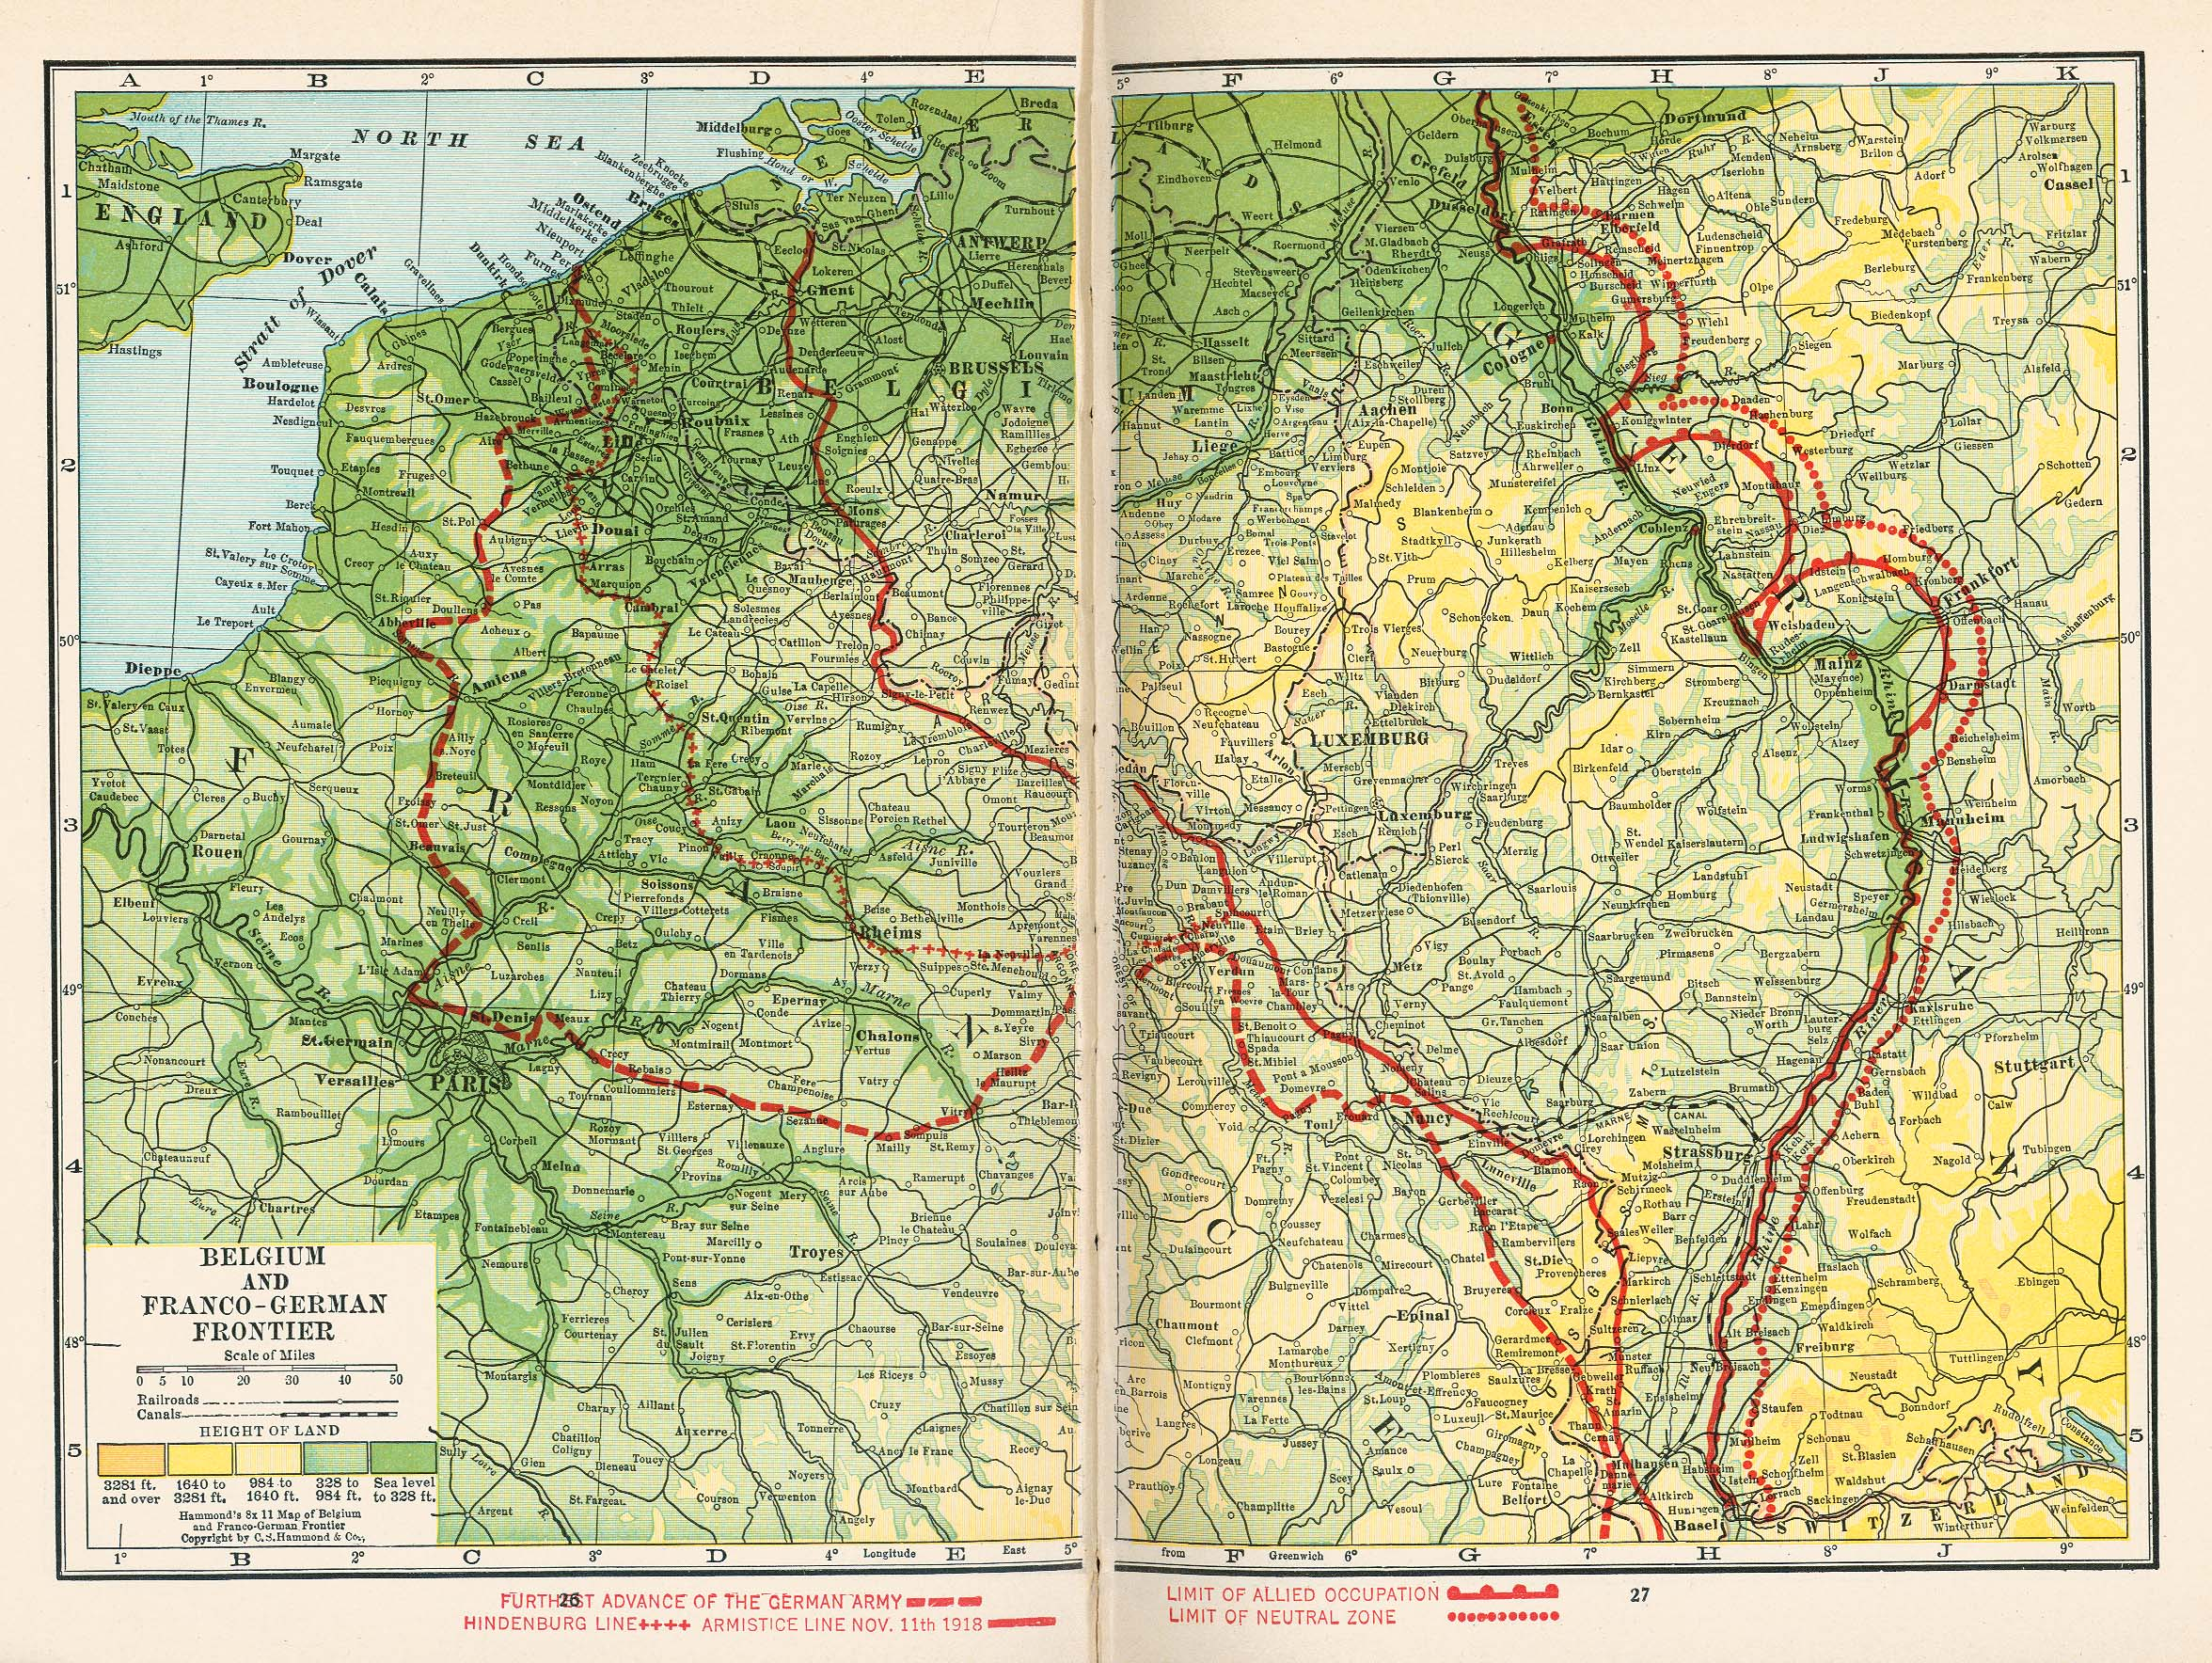 Europe Historical Maps - Perry-Castañeda Map Collection - UT ... on heligoland germany map, bismarck germany map, saale germany map, greece germany map, hohenzollern germany map, spa germany map, unesco germany map, argentina germany map, finland germany map, east prussia germany map, world war one germany map, ardennes germany map, ghent germany map, alps germany map, frisian islands germany map, algeria germany map, ems germany map, lithuania germany map, romania germany map, soviet germany map,